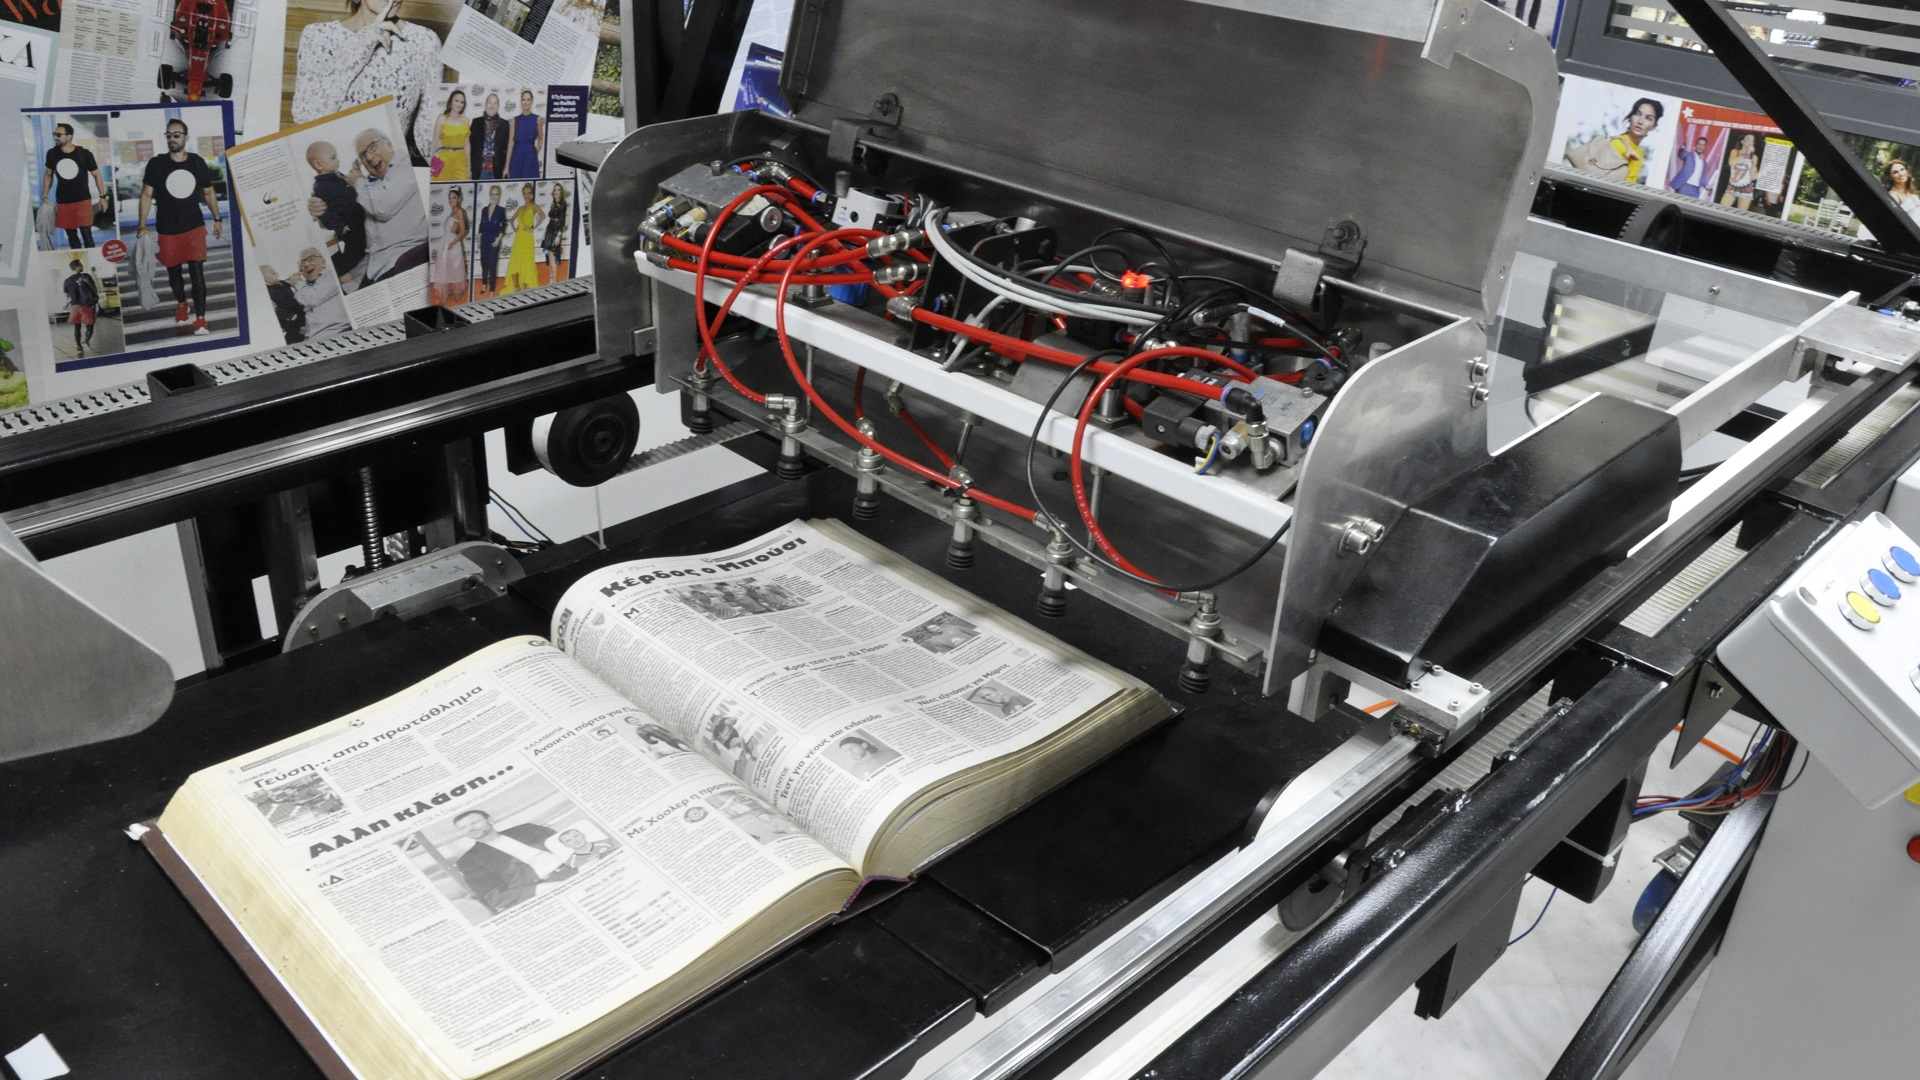 The Bookscanner equipment balances gentle handling of each book to avoid any wear-and-tear, while achieving high scanning speeds